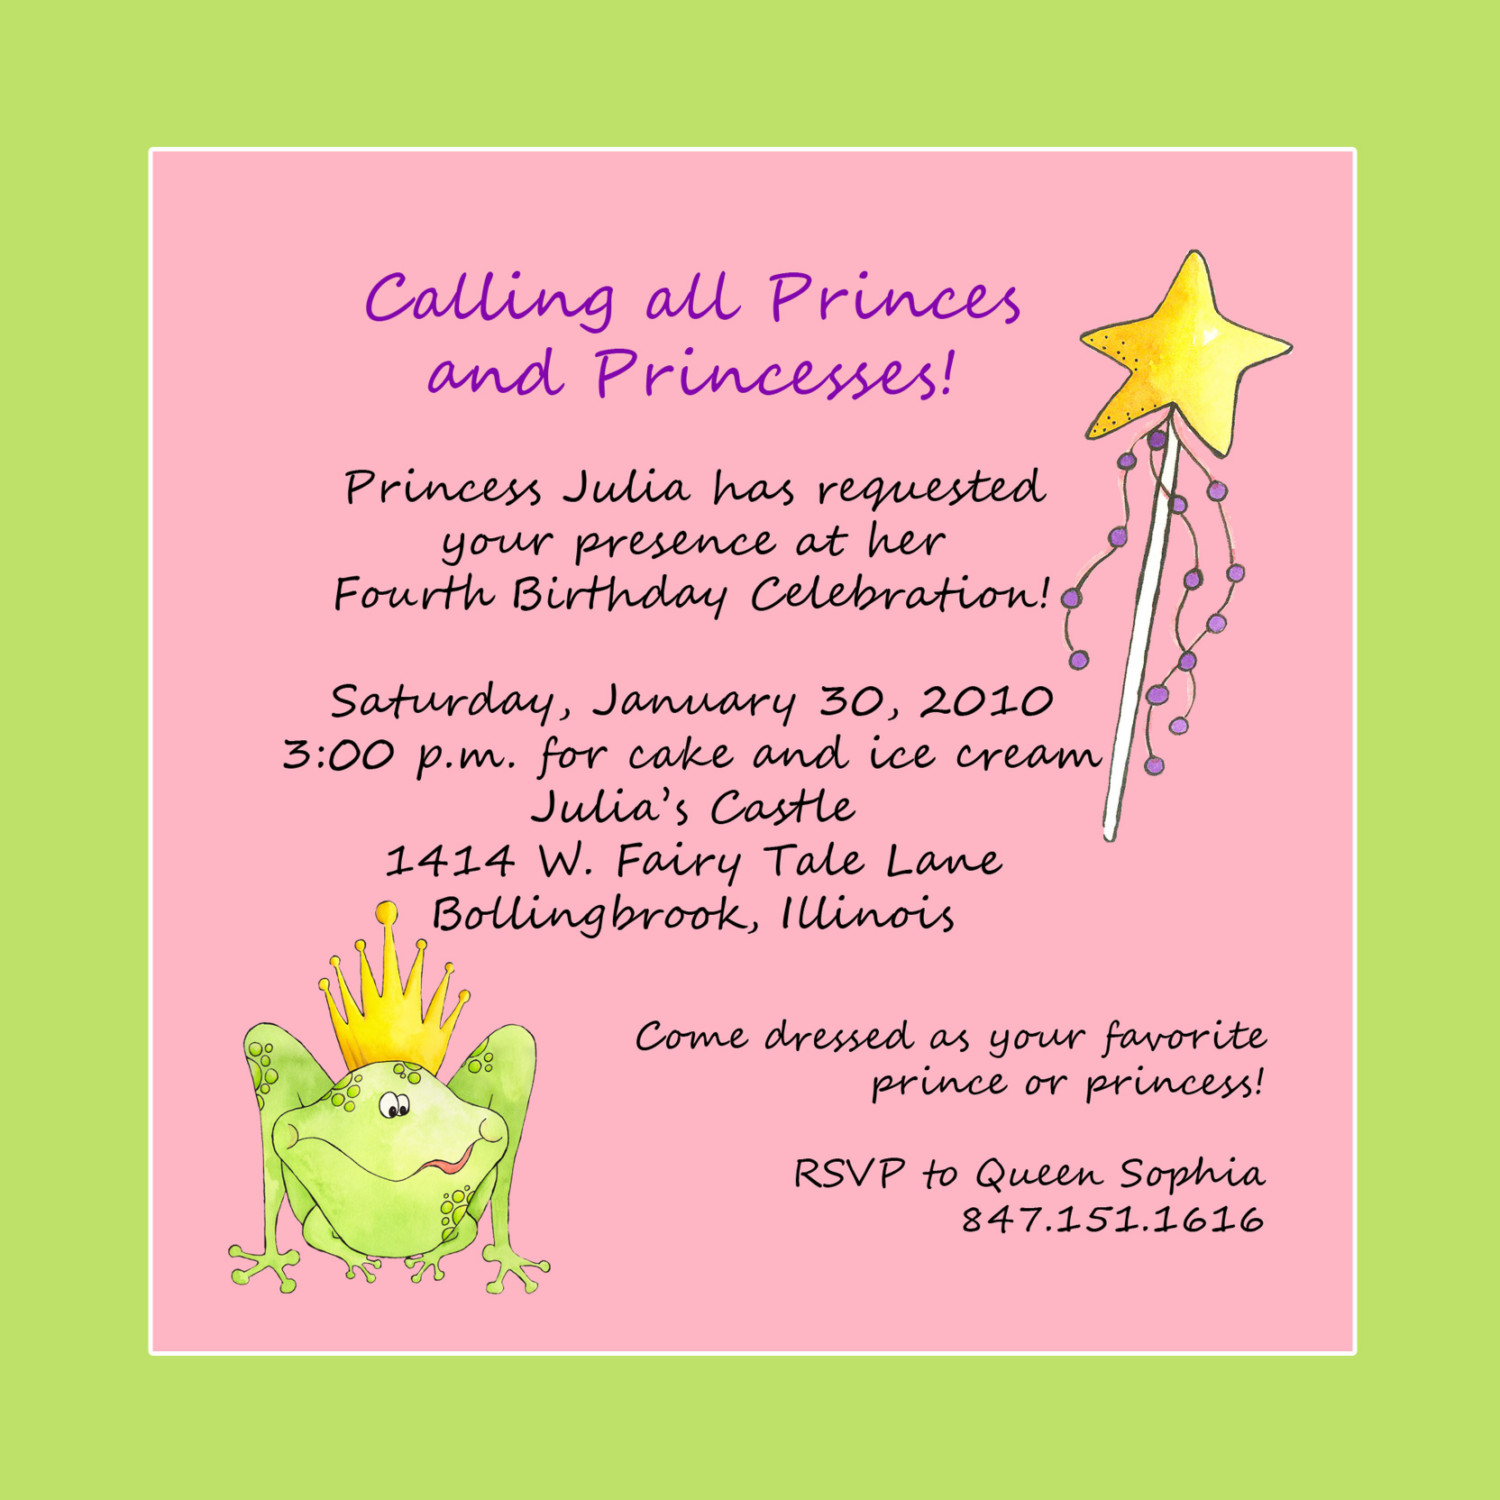 birthday invitation quotes for 6th birthday ; birthday-party-invitation-wording-ideas-about-how-to-design-Birthday-invitations-for-your-inspiration-19